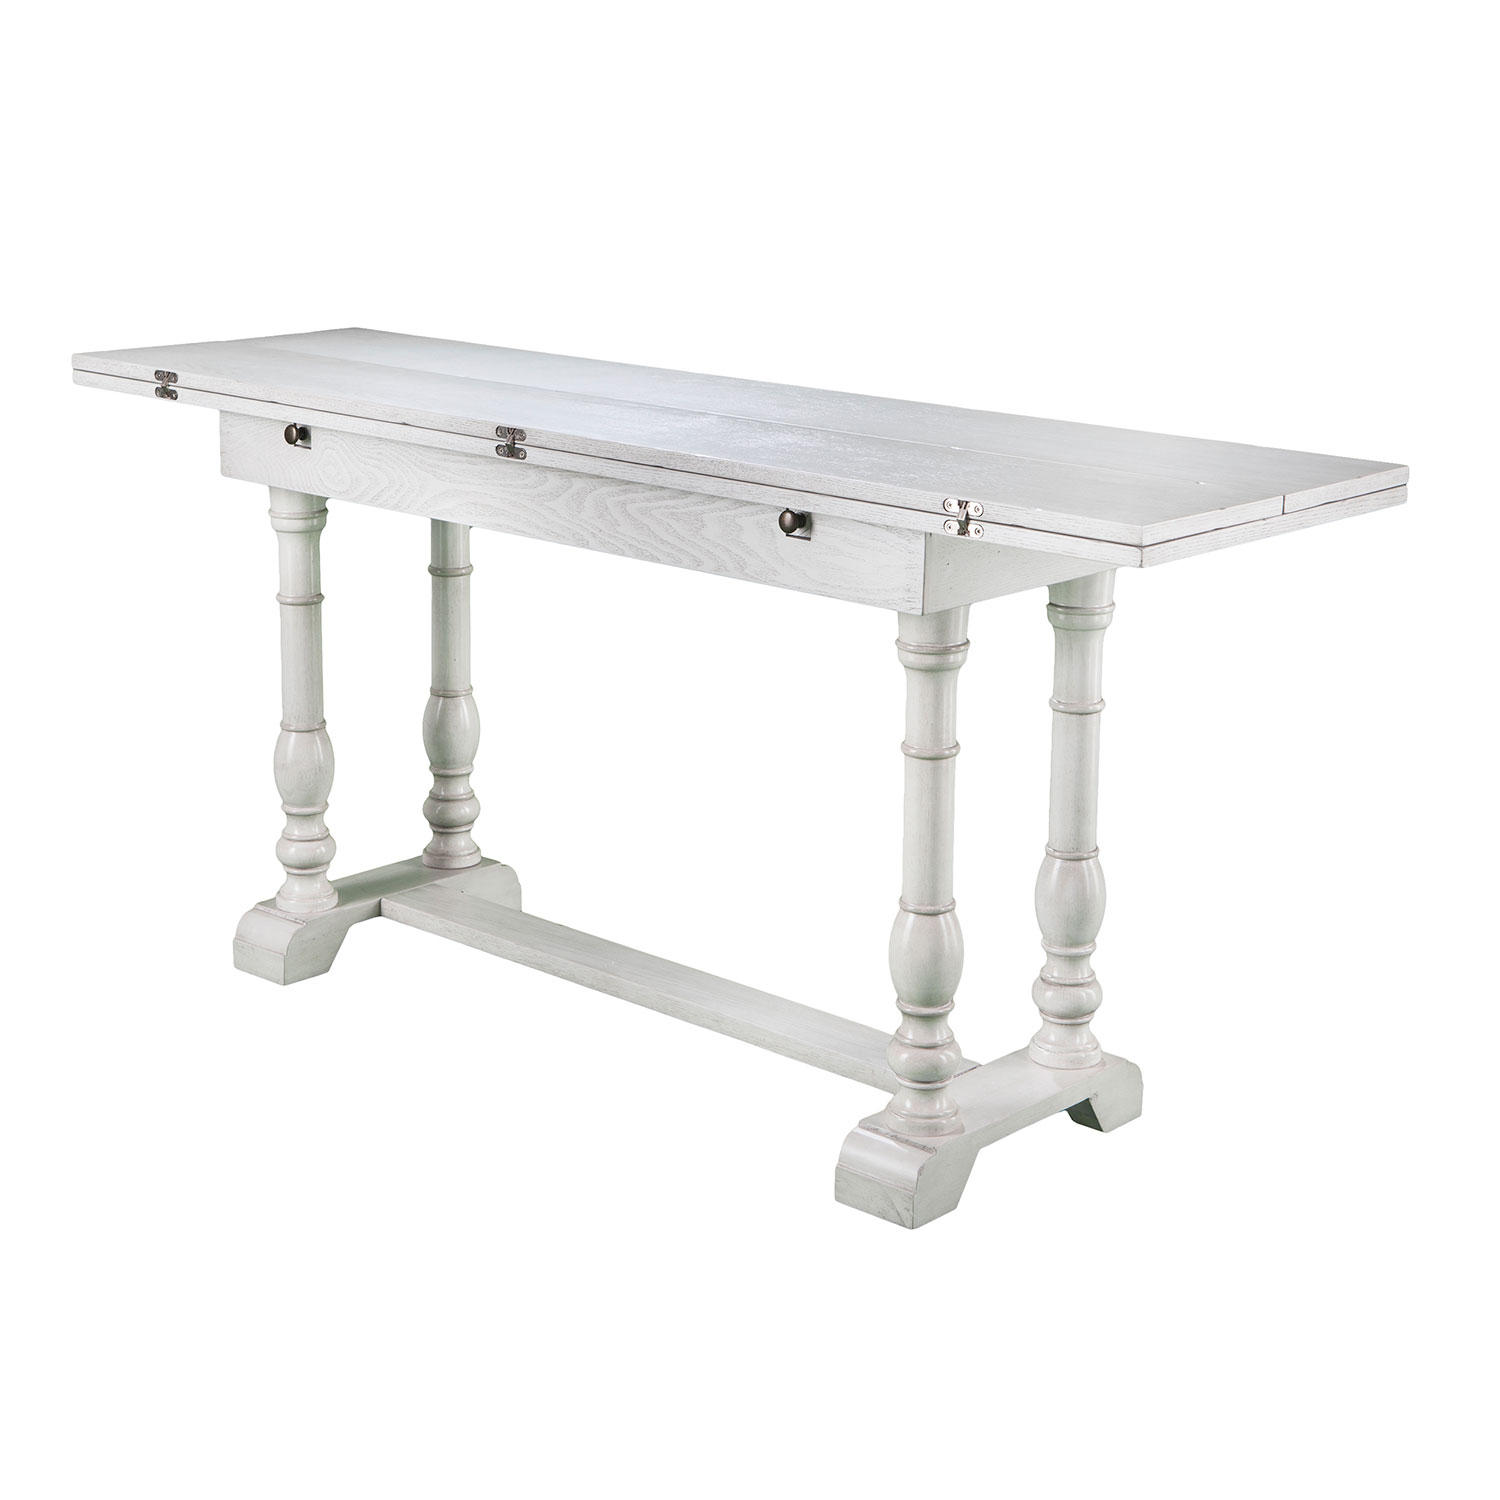 Sei Binx SC4980 Farmhouse Table